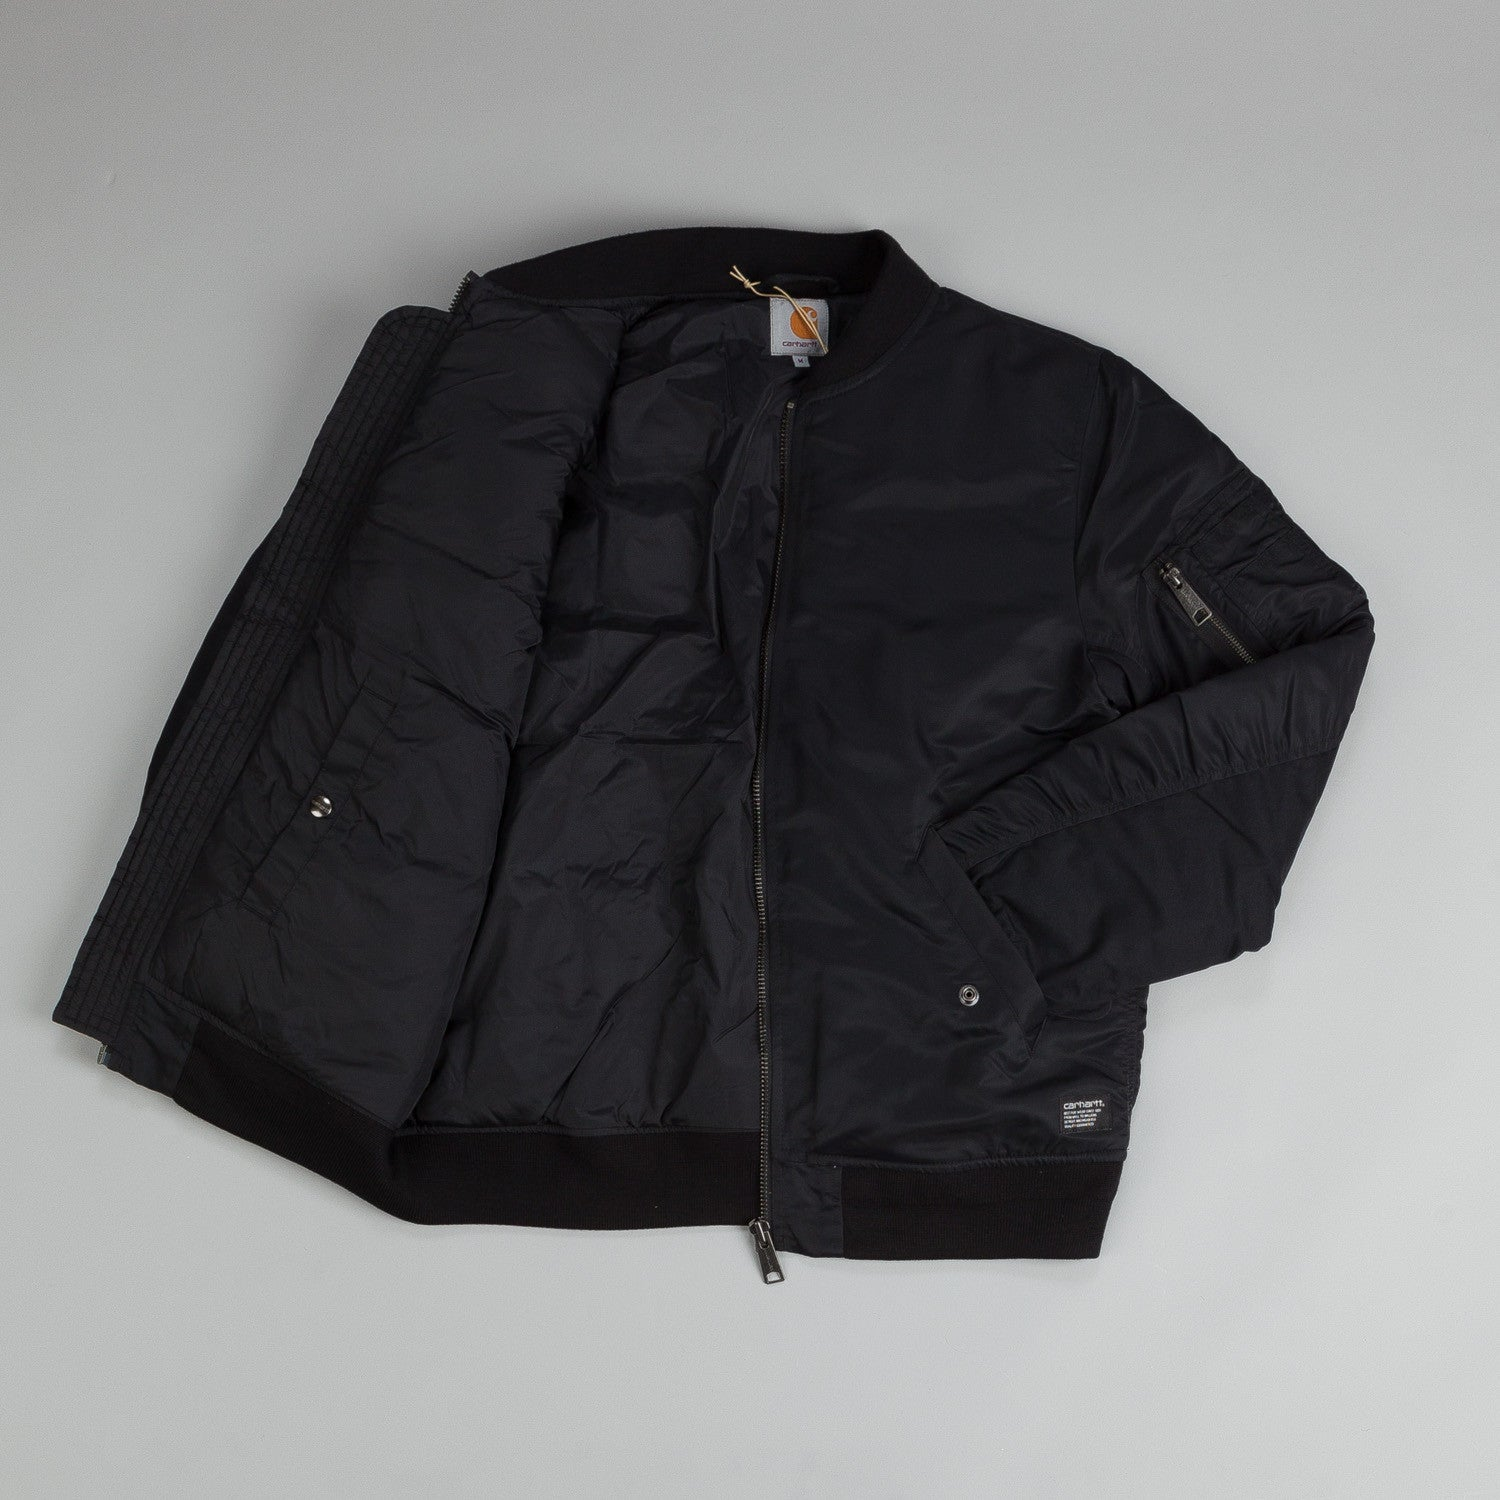 Carhartt Ashton Bomber Jacket Black